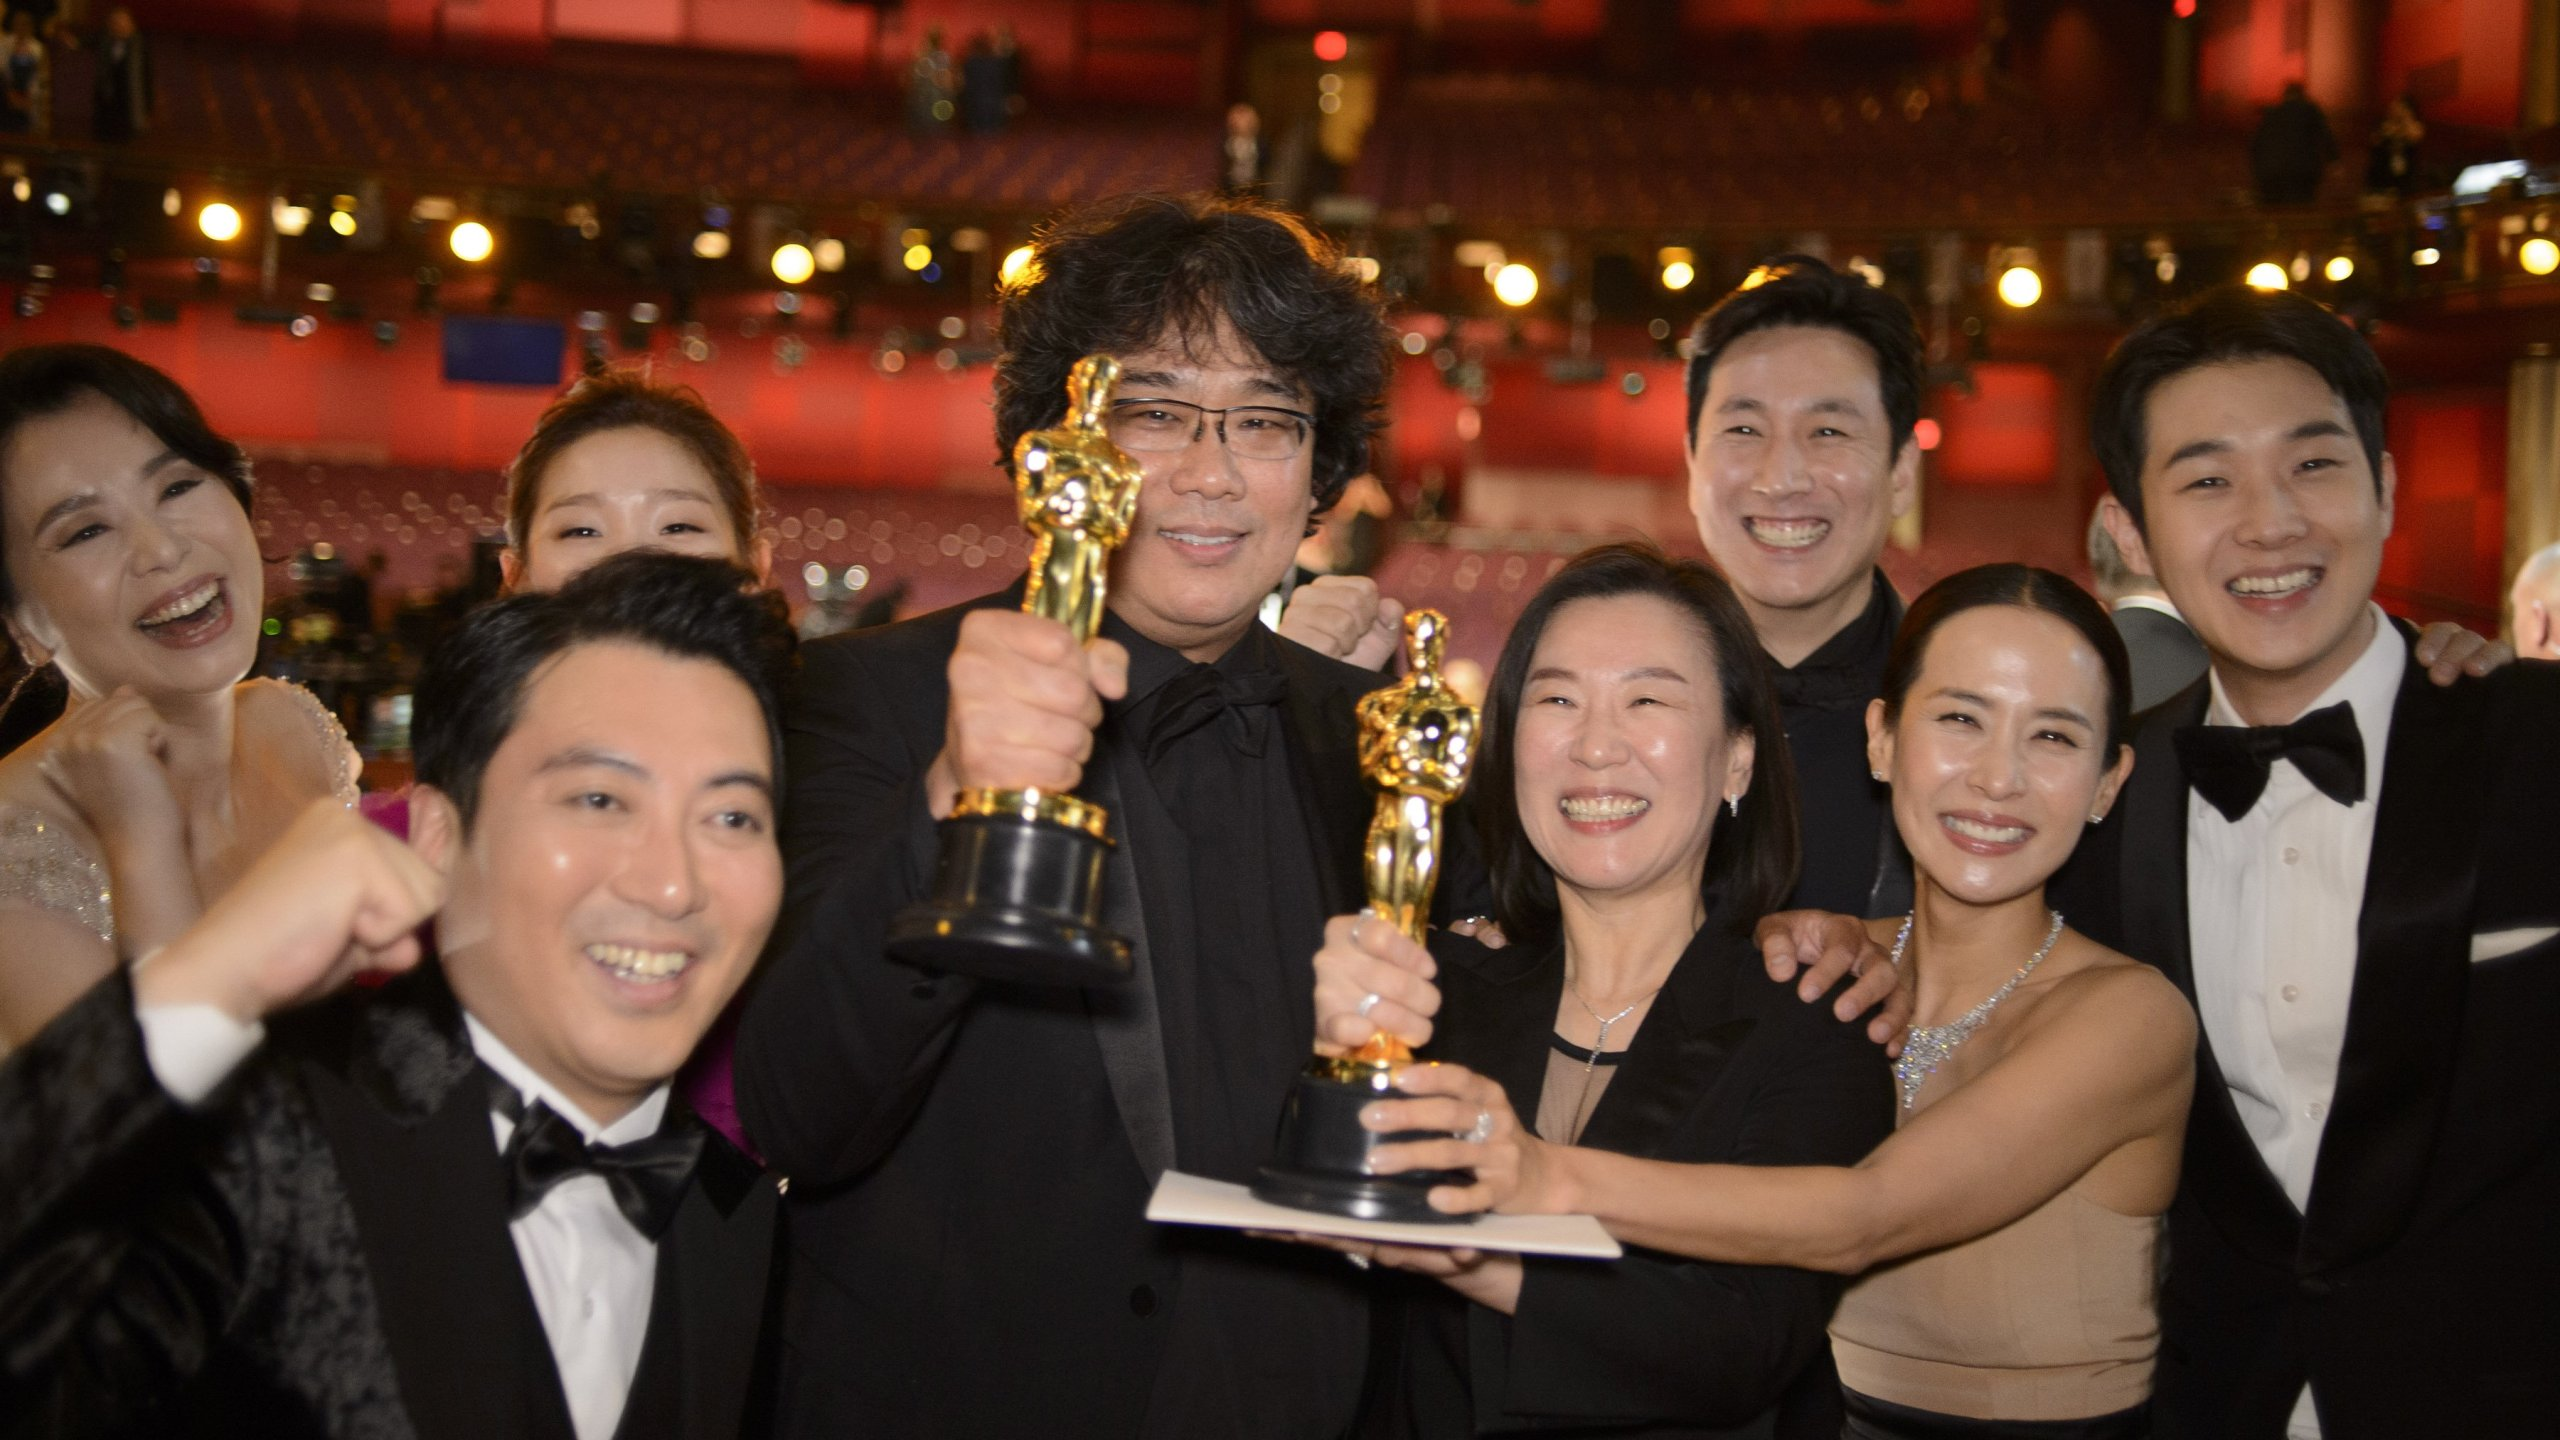 The cast and crew of parasite pose for a photo at the Academy Awards at the Dolby Theatre on Feb. 9. 2020. (Credit: Eric McCandless via Getty Images)